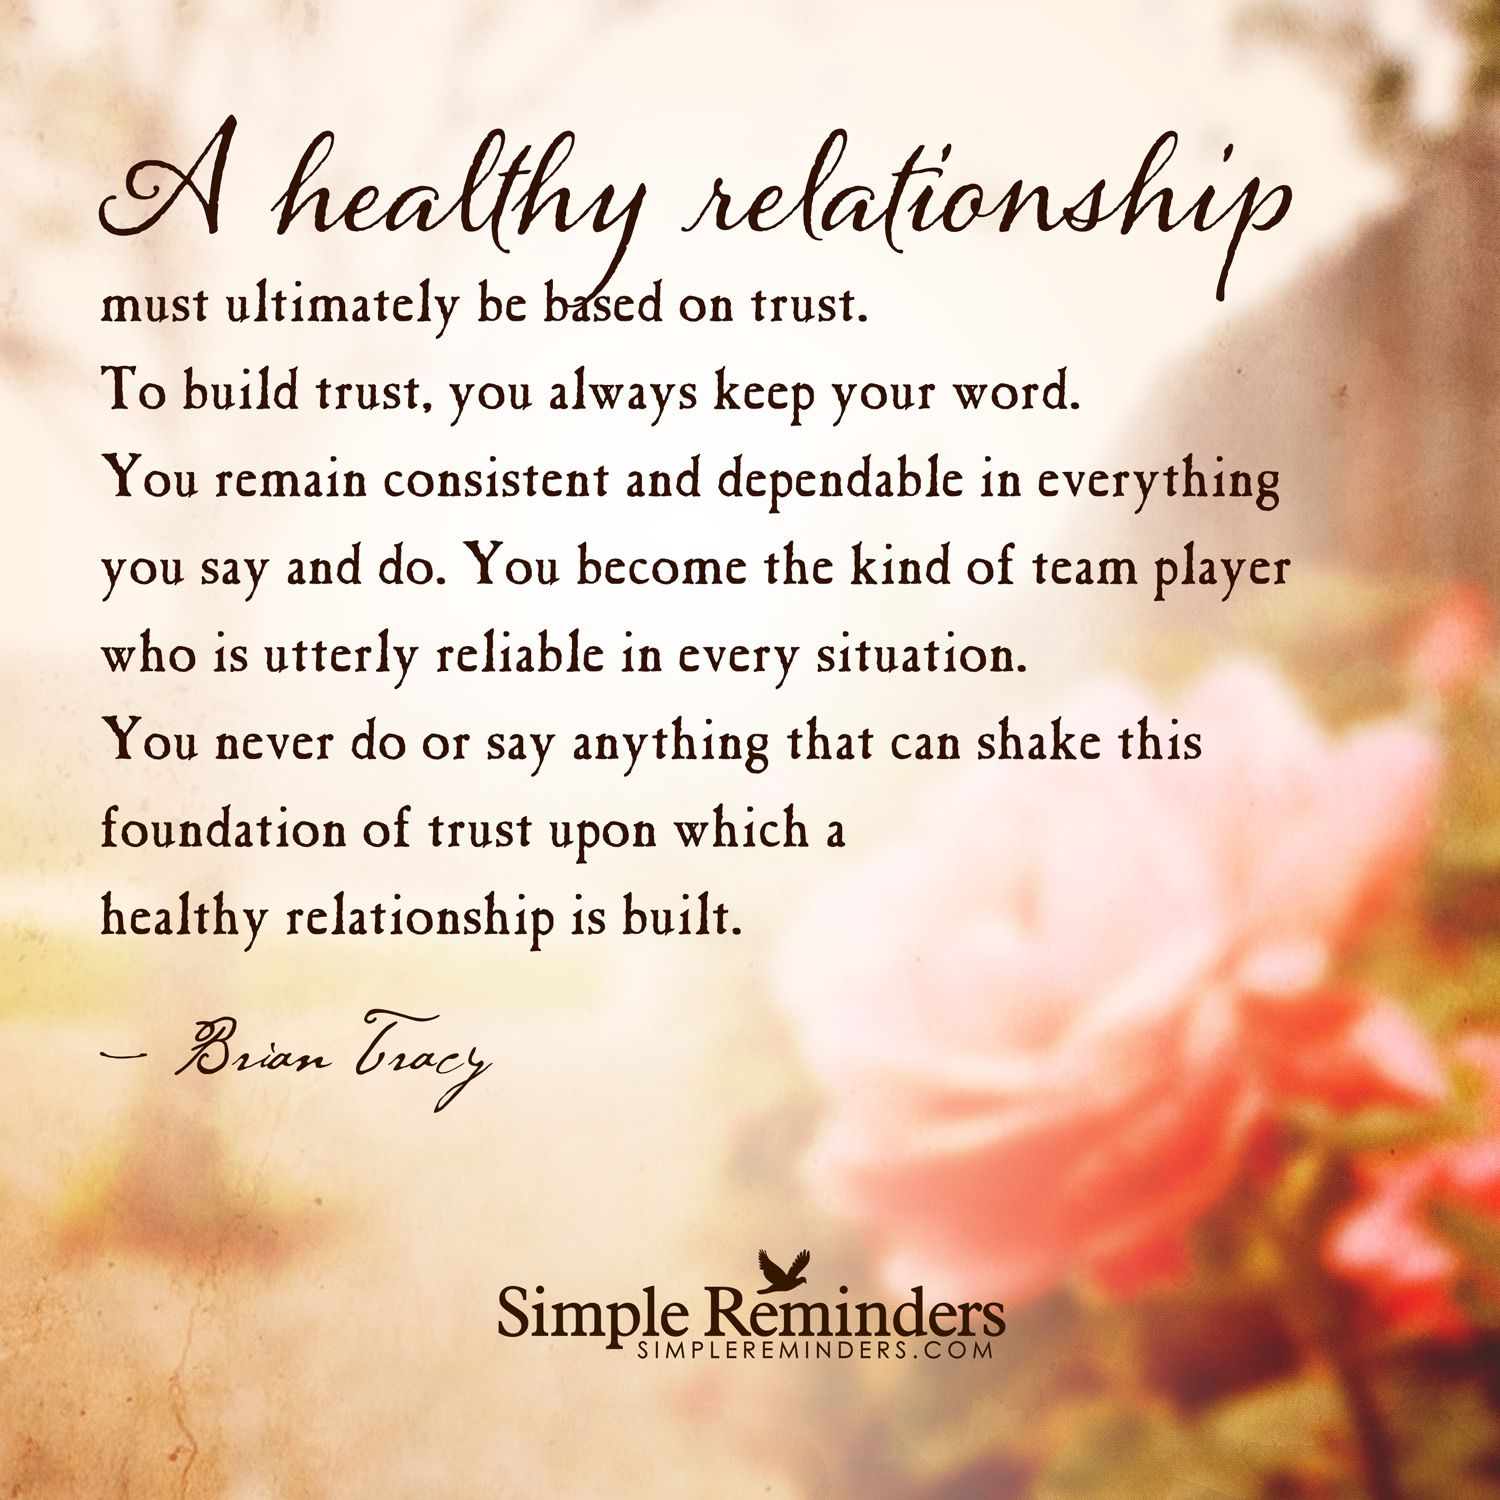 a healthy relationship must ultimately be based on trust to build a healthy relationship must ultimately be based on trust to build trust you always